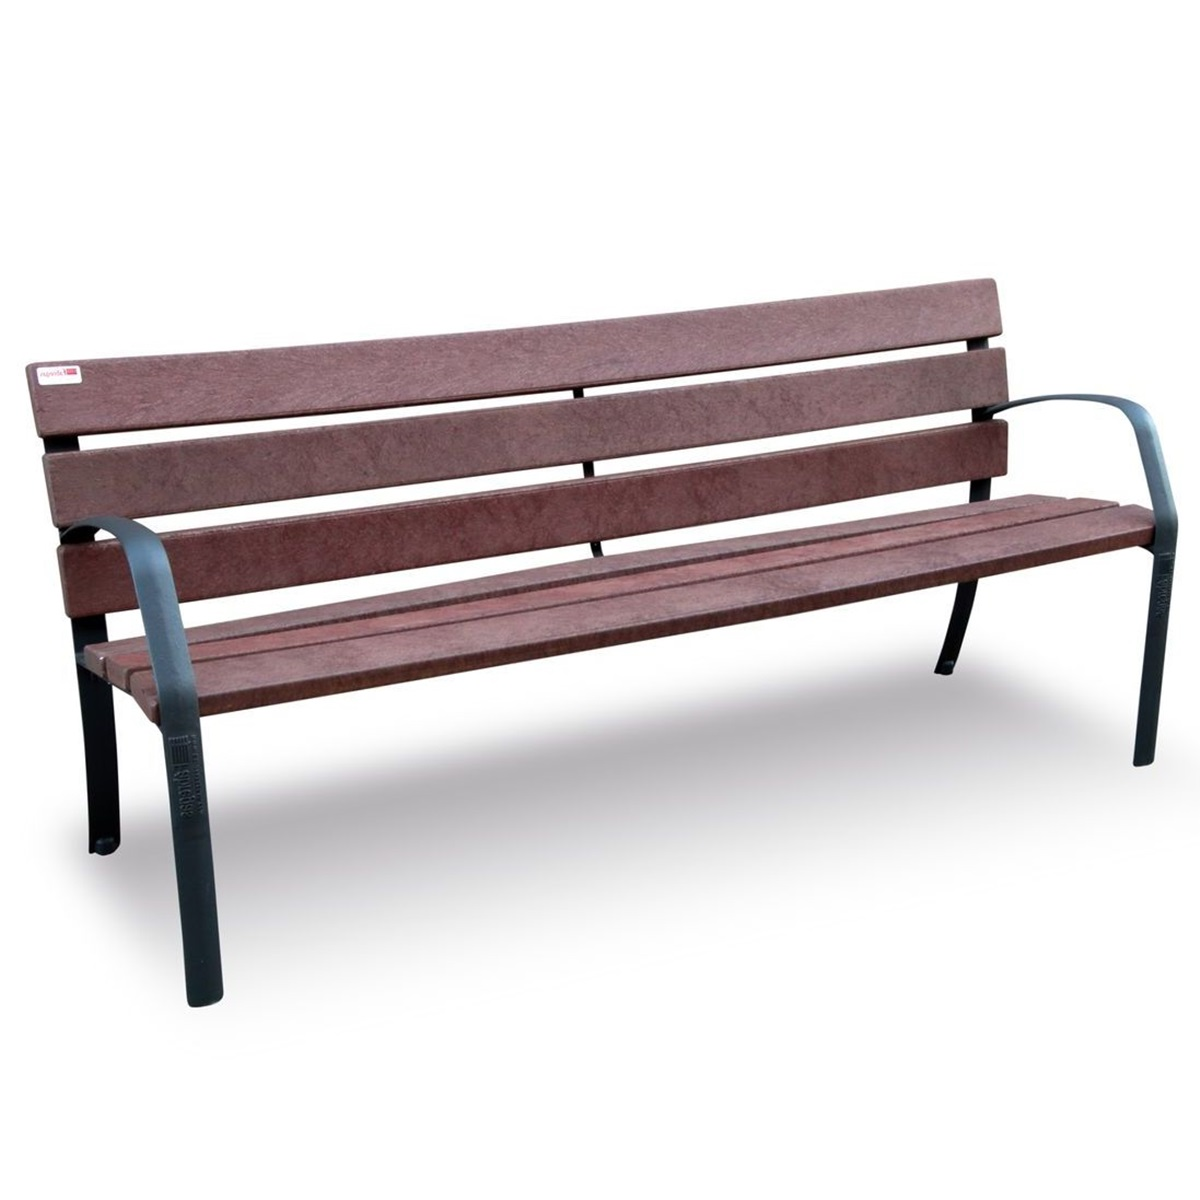 Similar Bench in recycled Polymer C-1016-PR